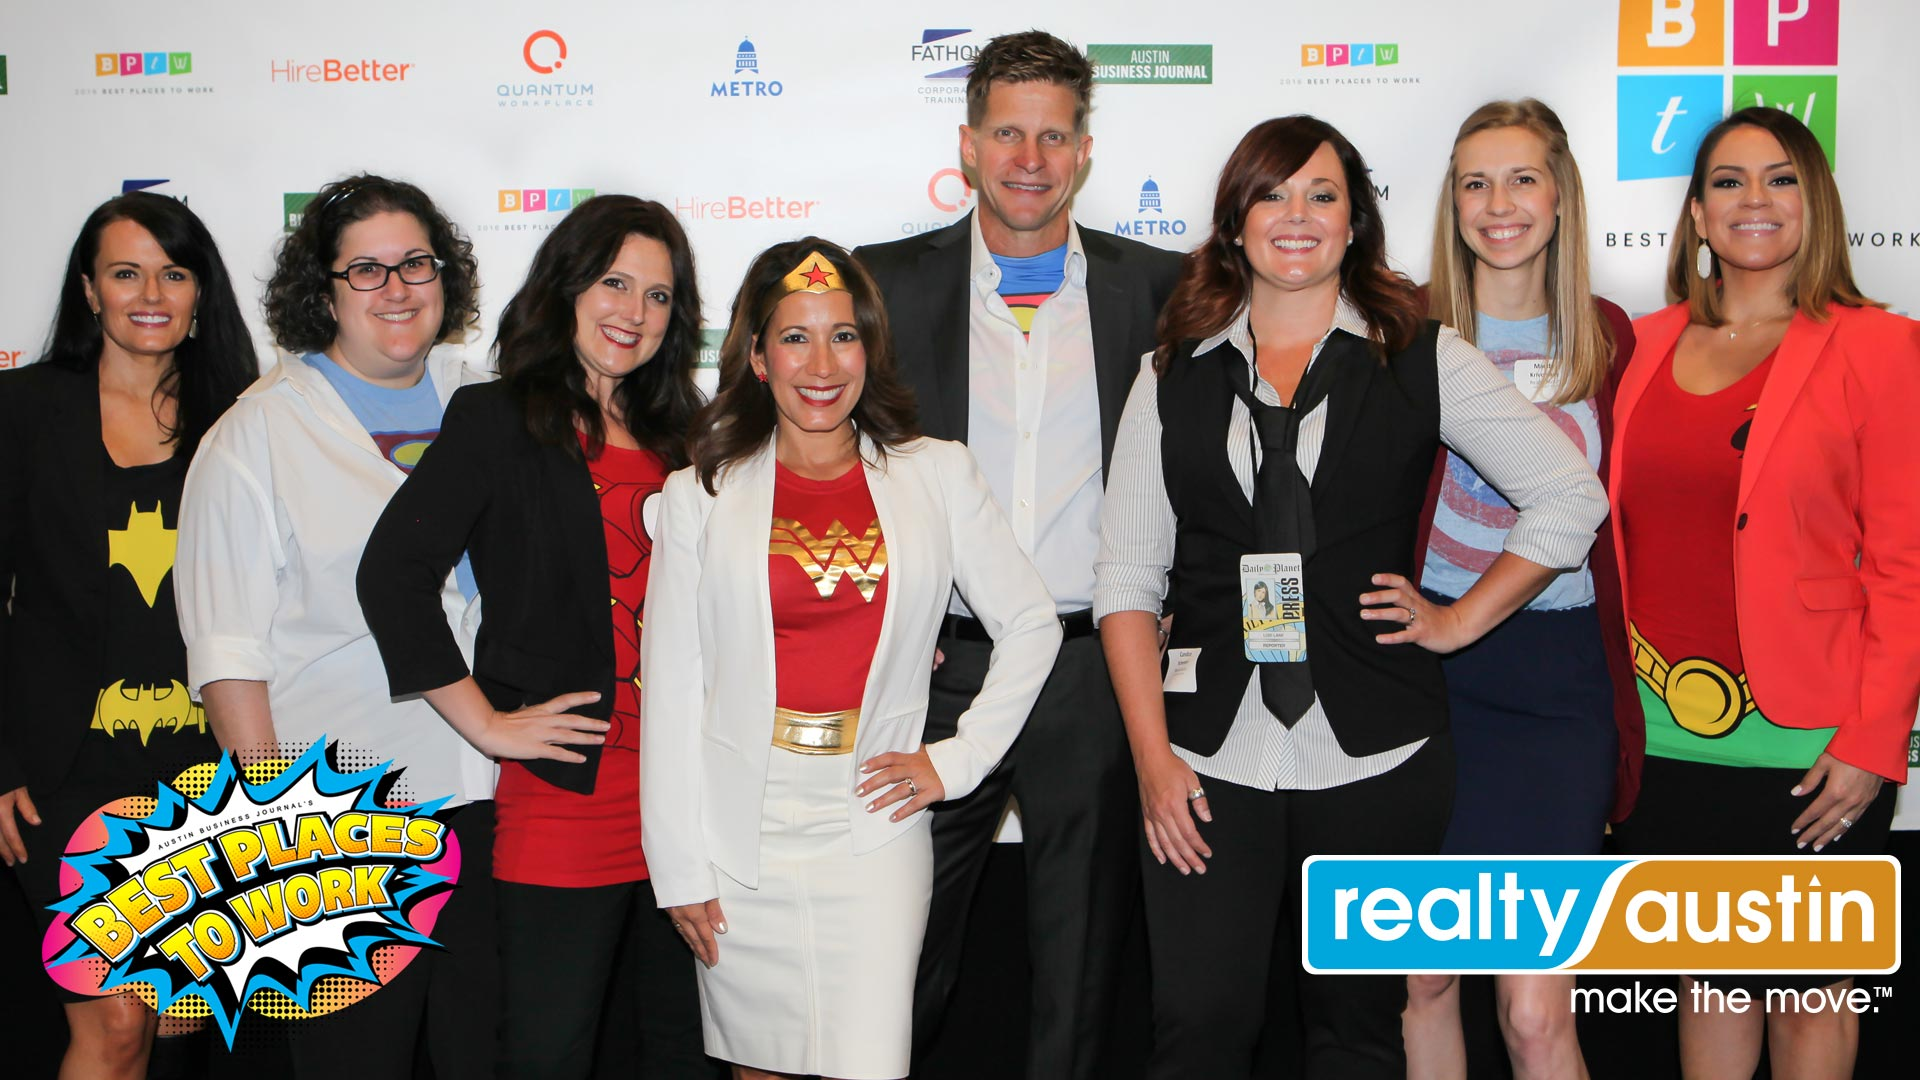 Image of Realty Austin Staff at Best Places to Work Awards